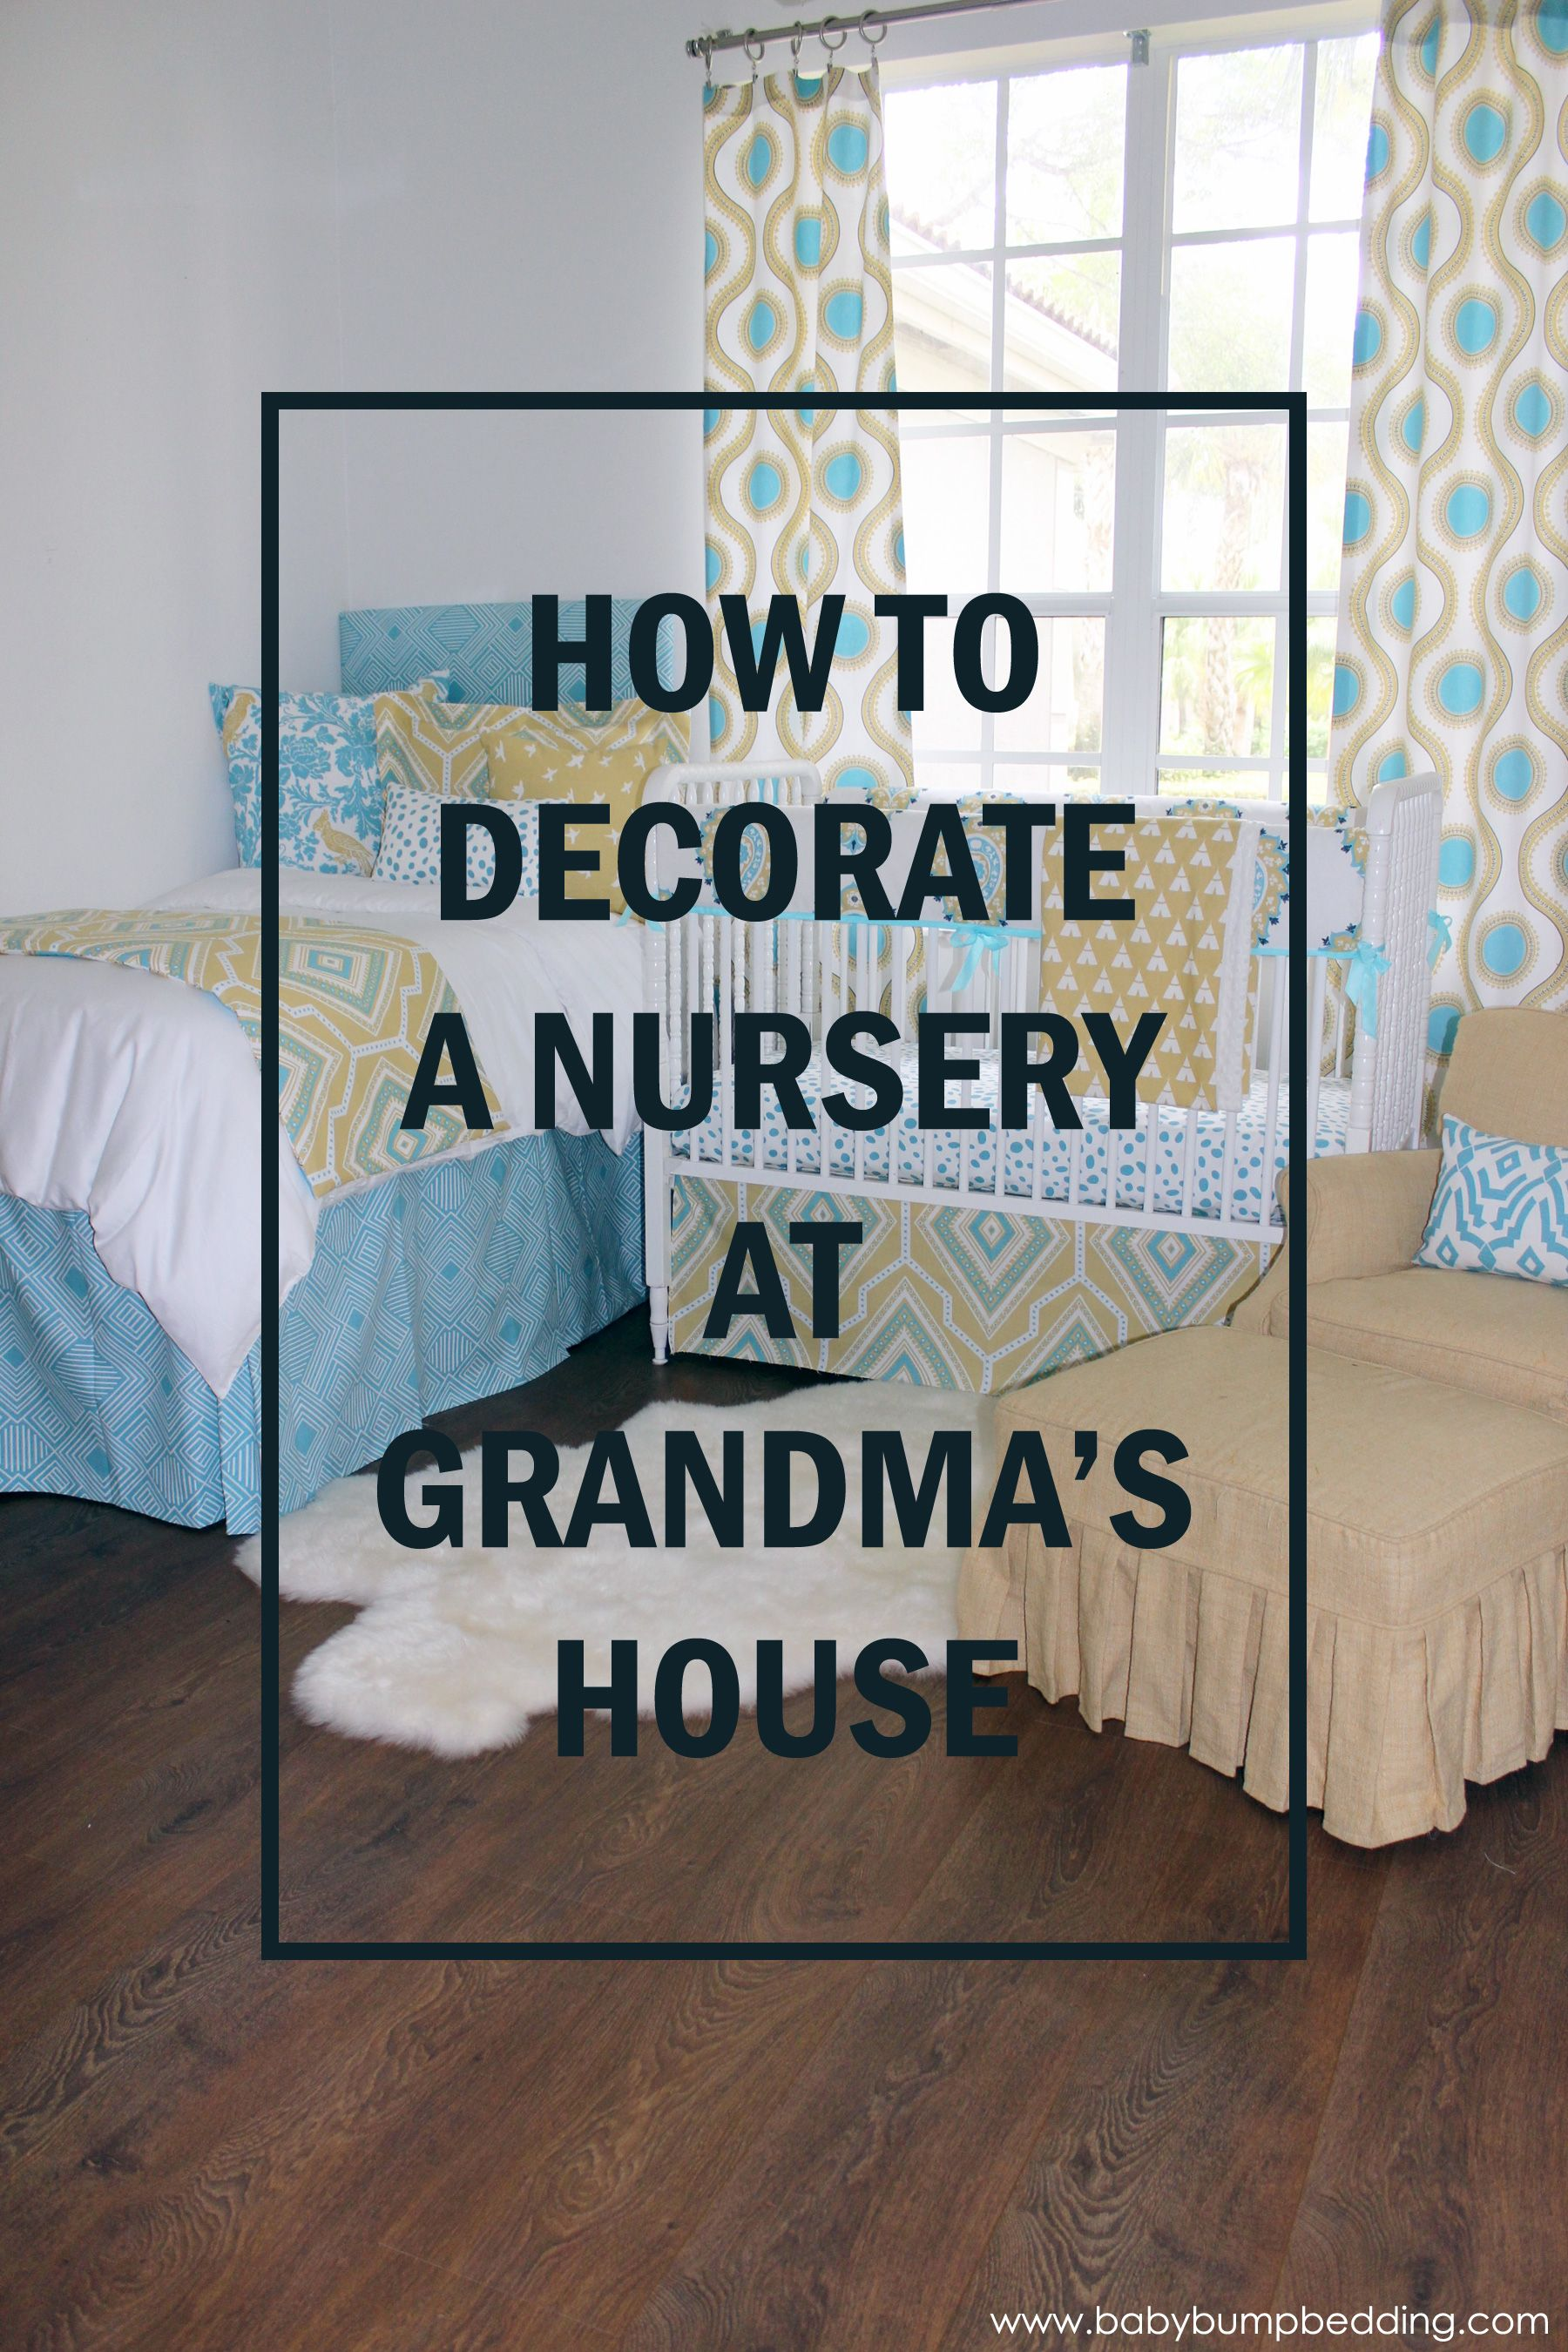 Decorating grandma\'s nursery. Design your nursery to match your ...